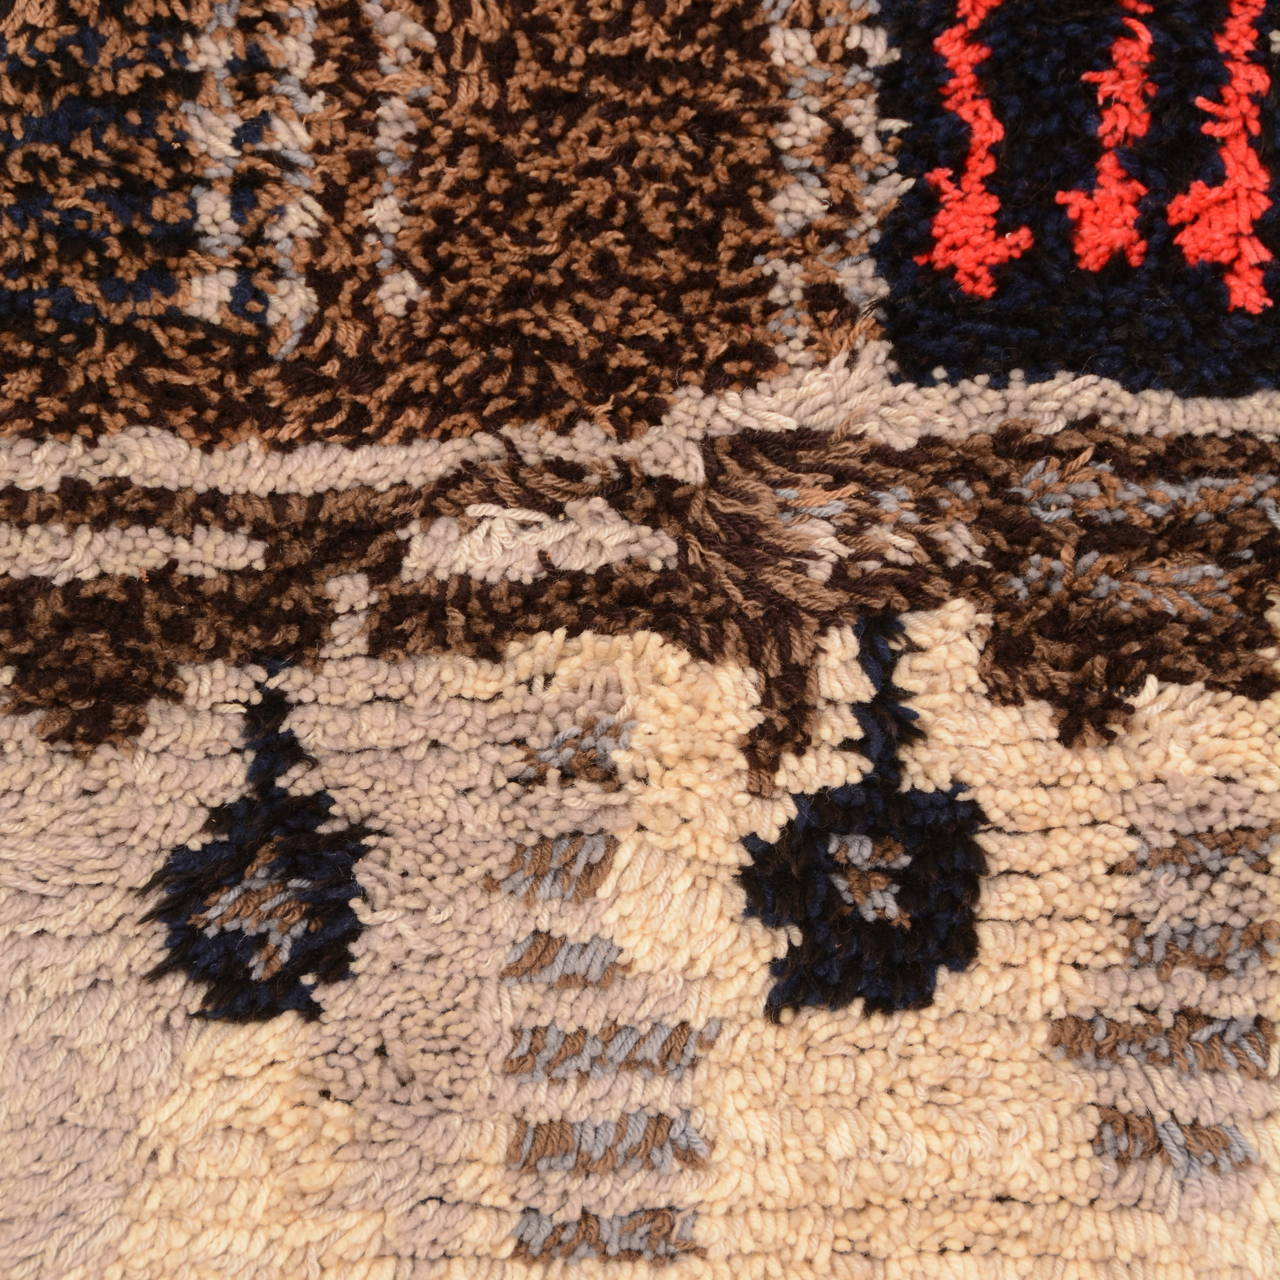 Midcentury Scandinavian Modern Rya Wool Rug Wall Hanging In Excellent Condition For Sale In Los Angeles, CA